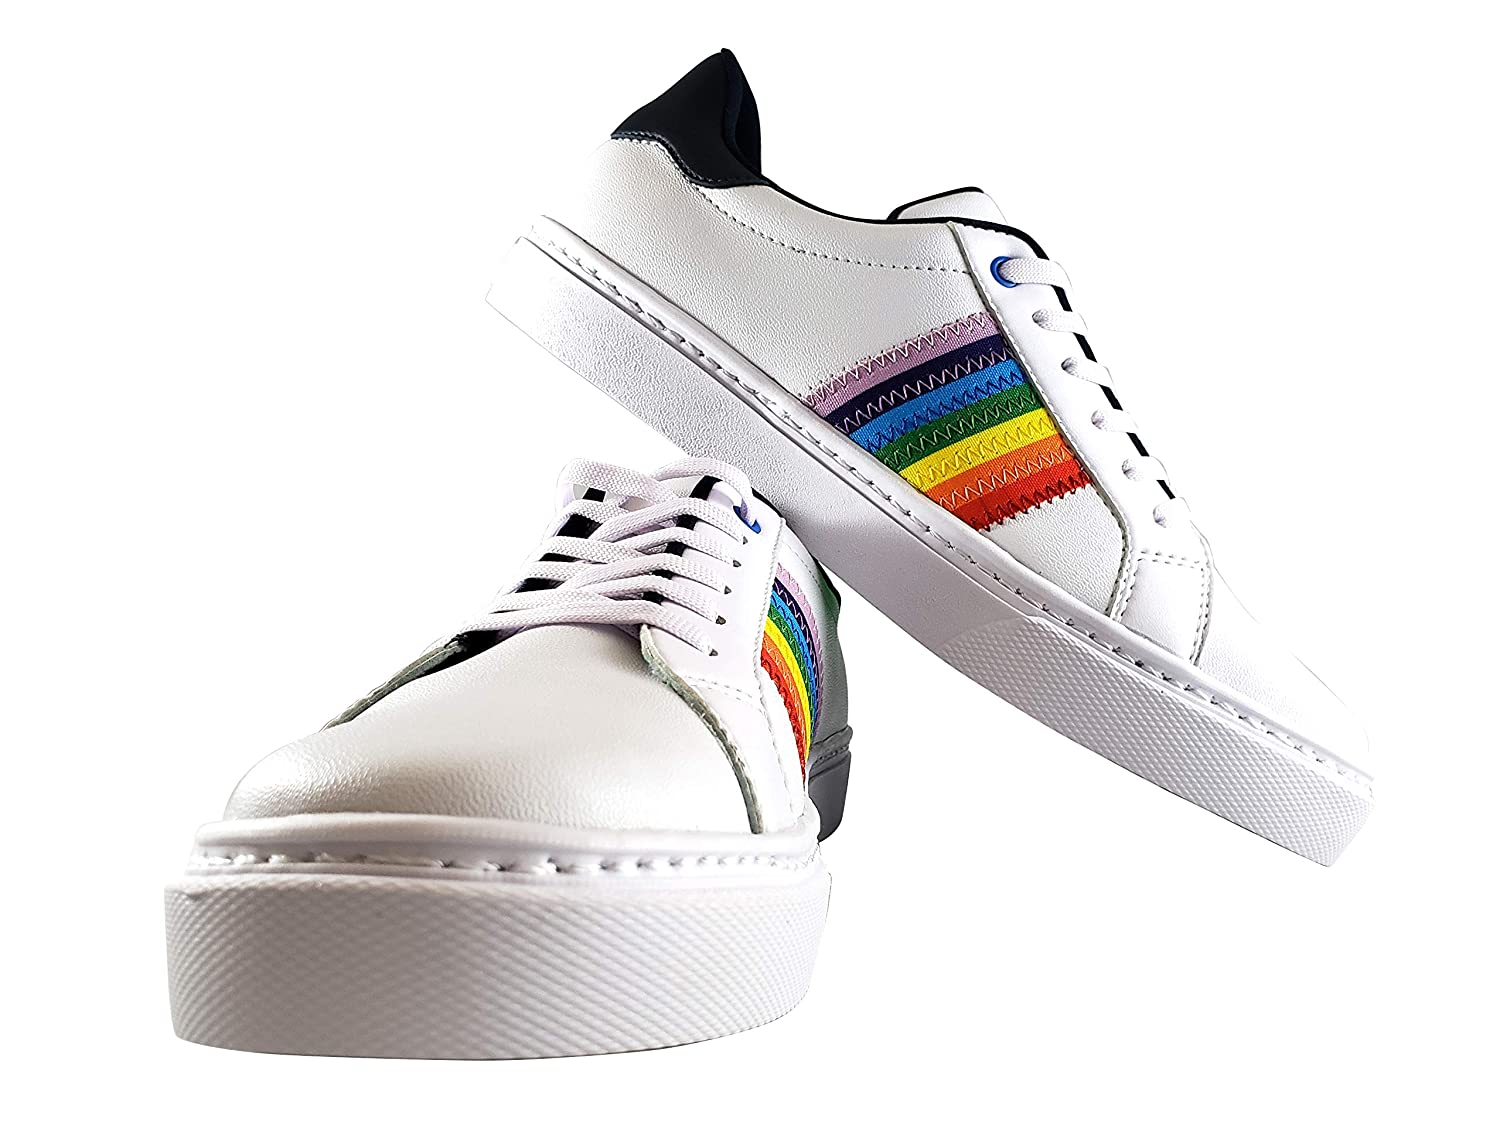 Ranking TOP9 Rainbow Pride Long-awaited Shoes - White with Black 9. Trimming WOMEN'S